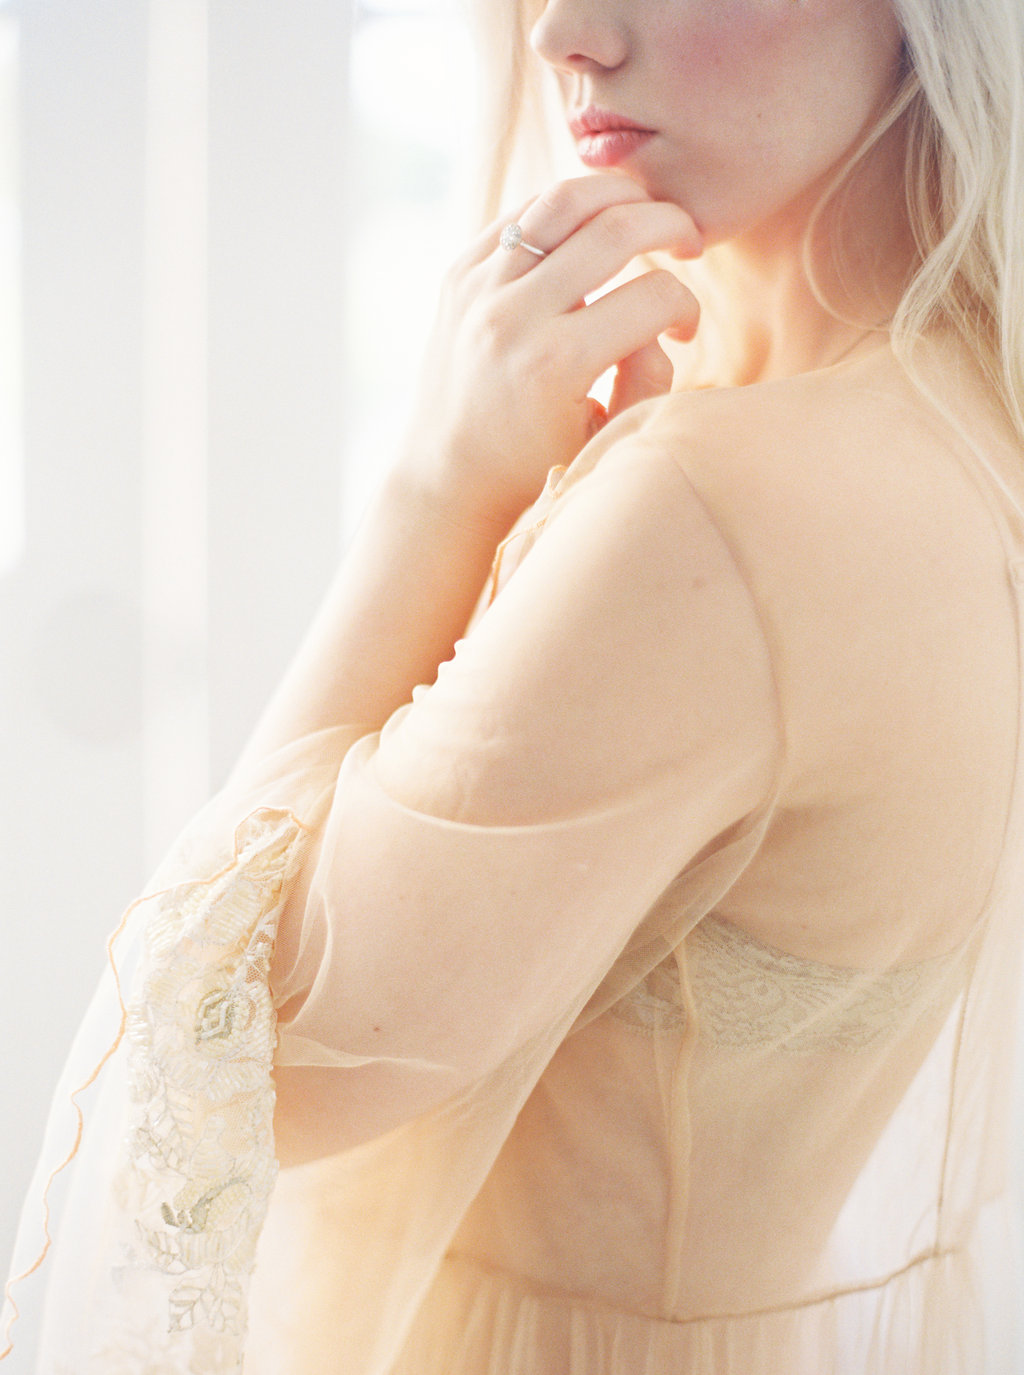 Sunrise Boudoir Session - Lindsey Brunk